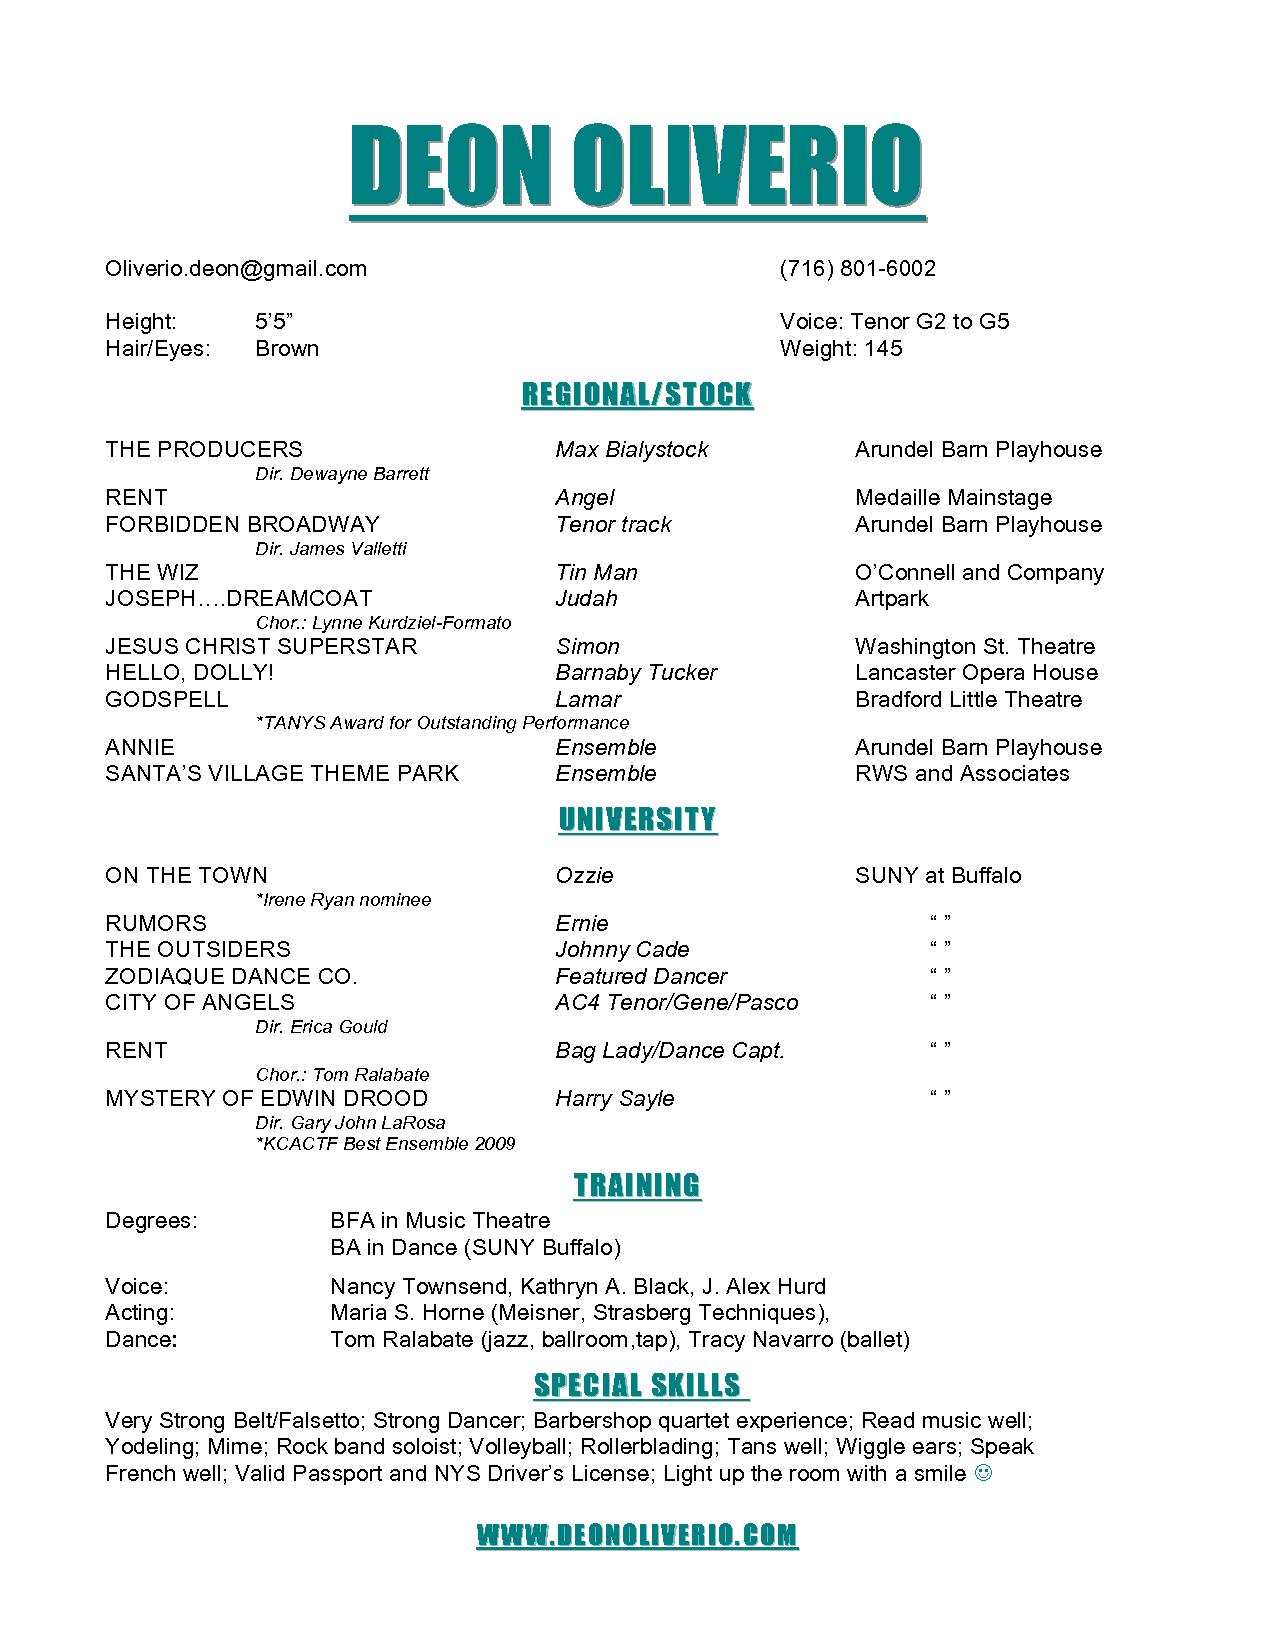 Theatre Resume Template 19 Commercial Actor   techtrontechnologies.com